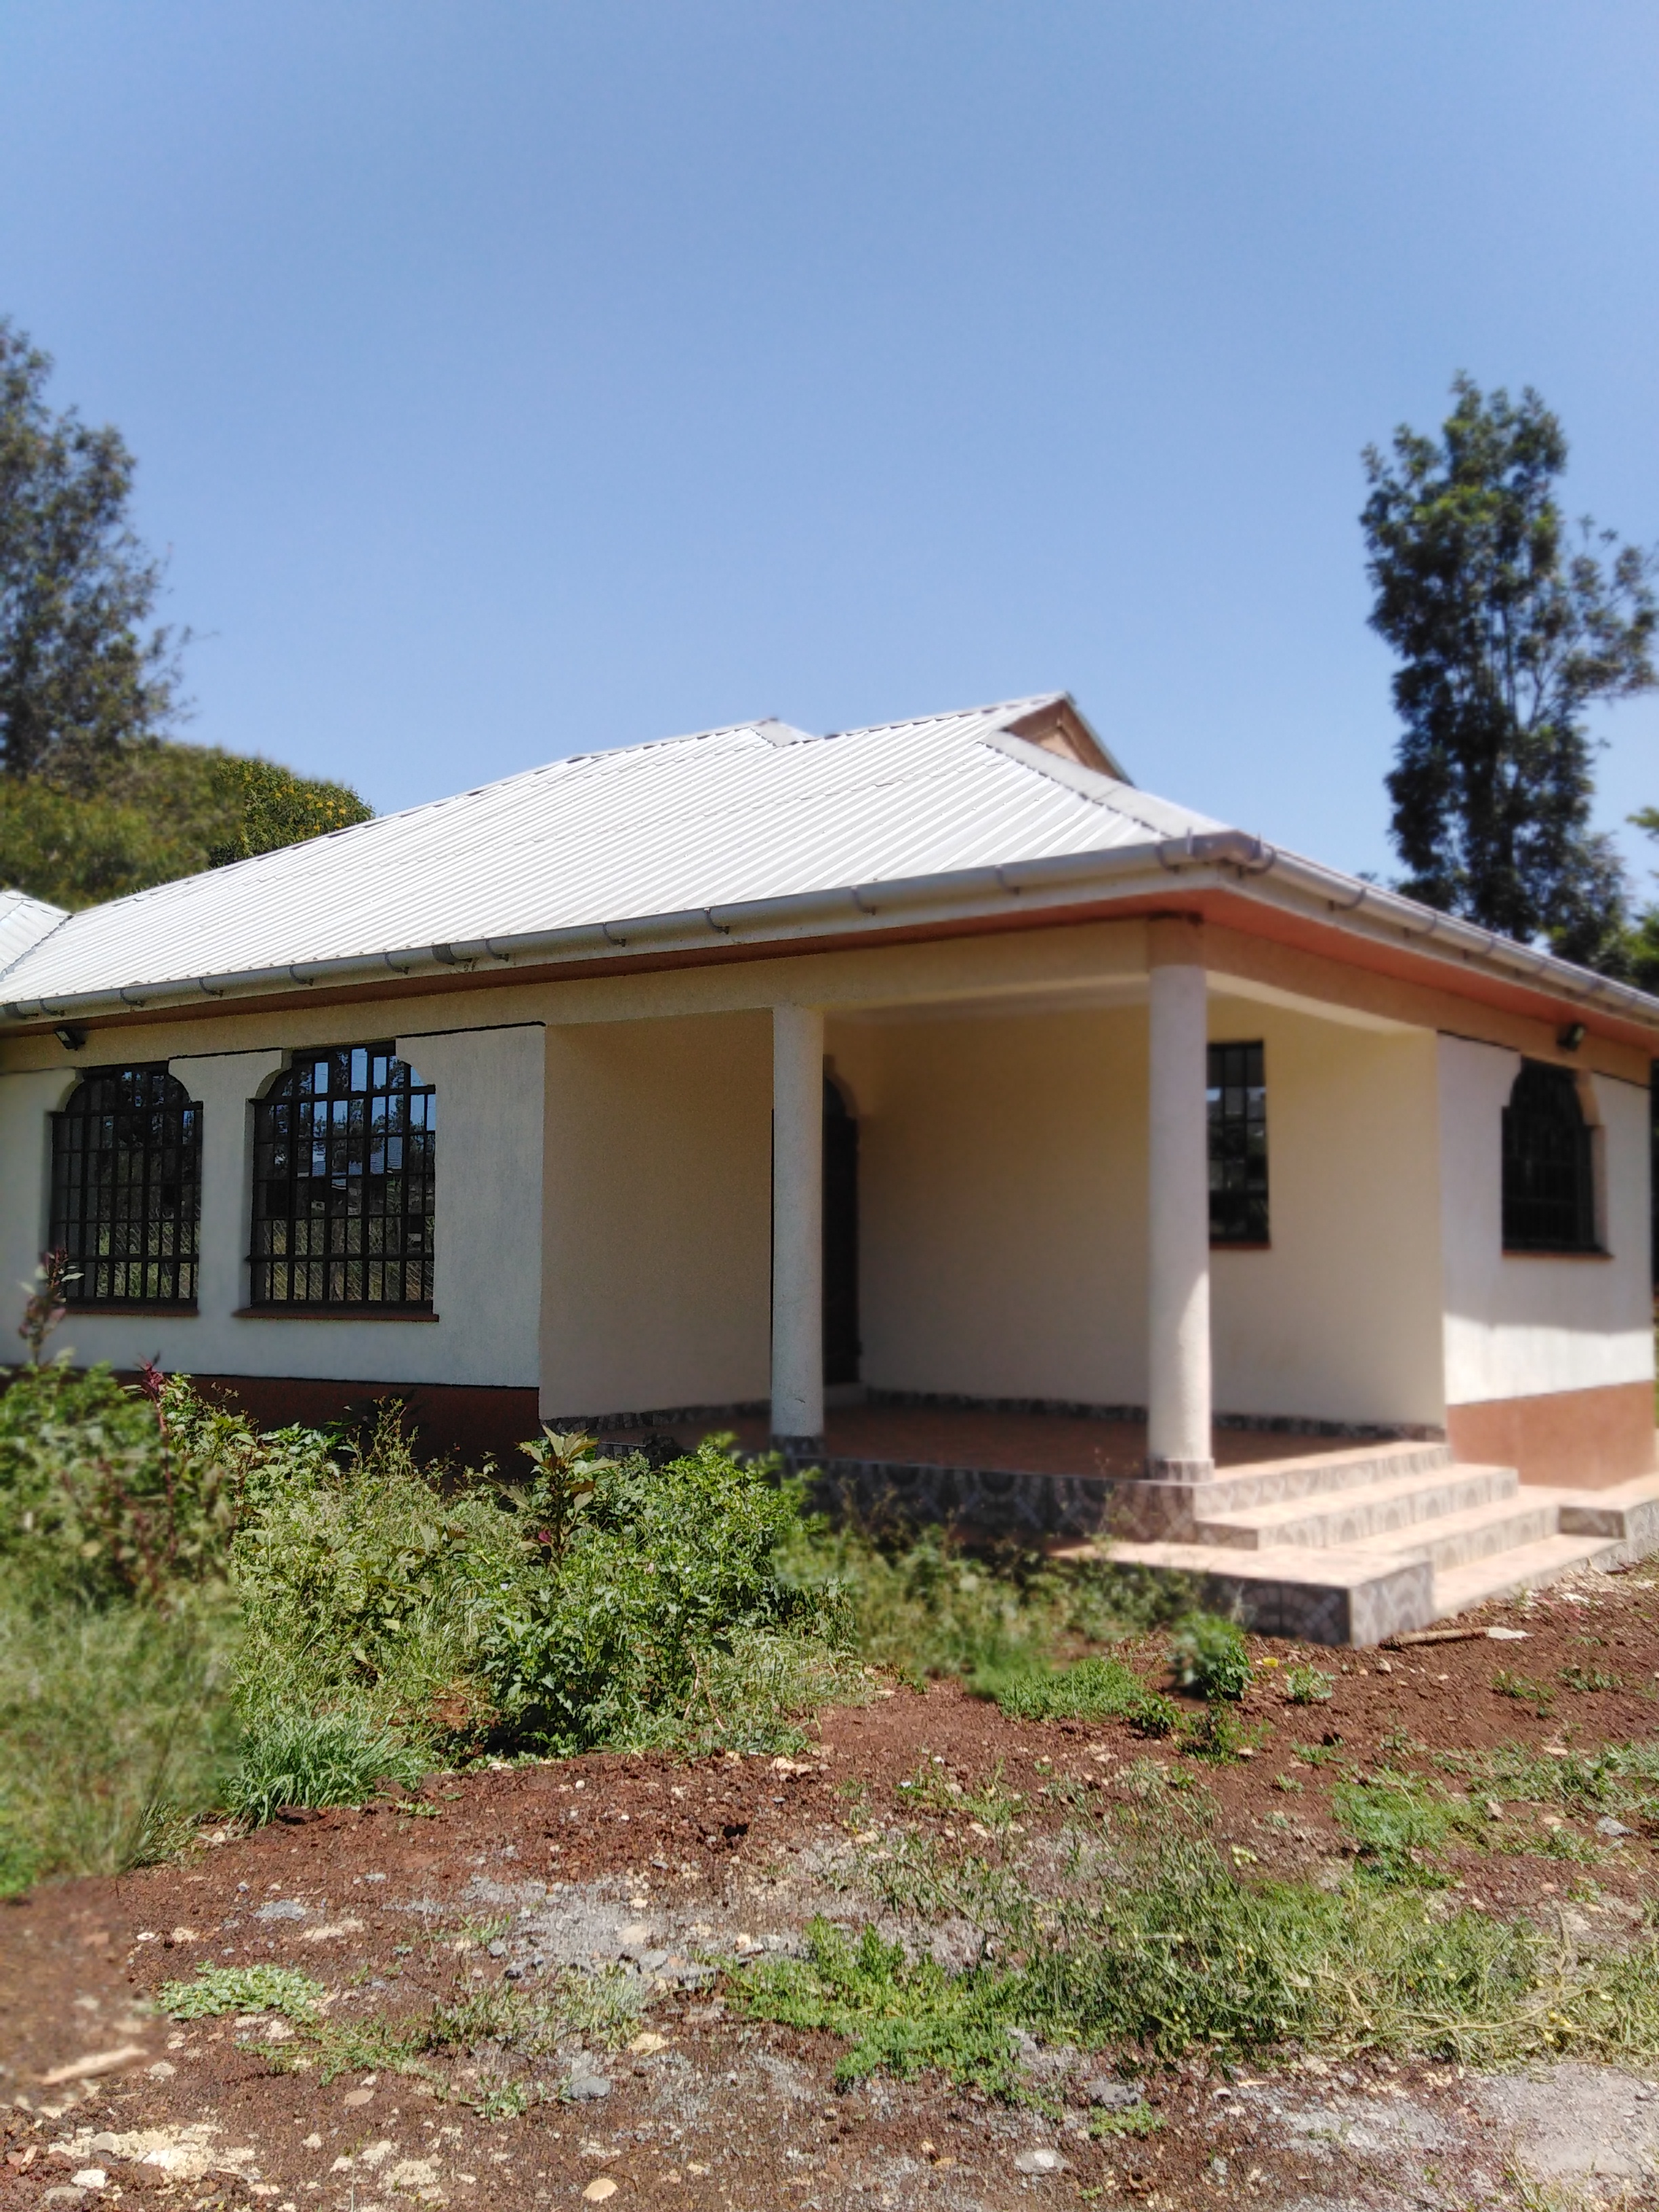 3 bedroom house with a detached sq to let in Kiambu road